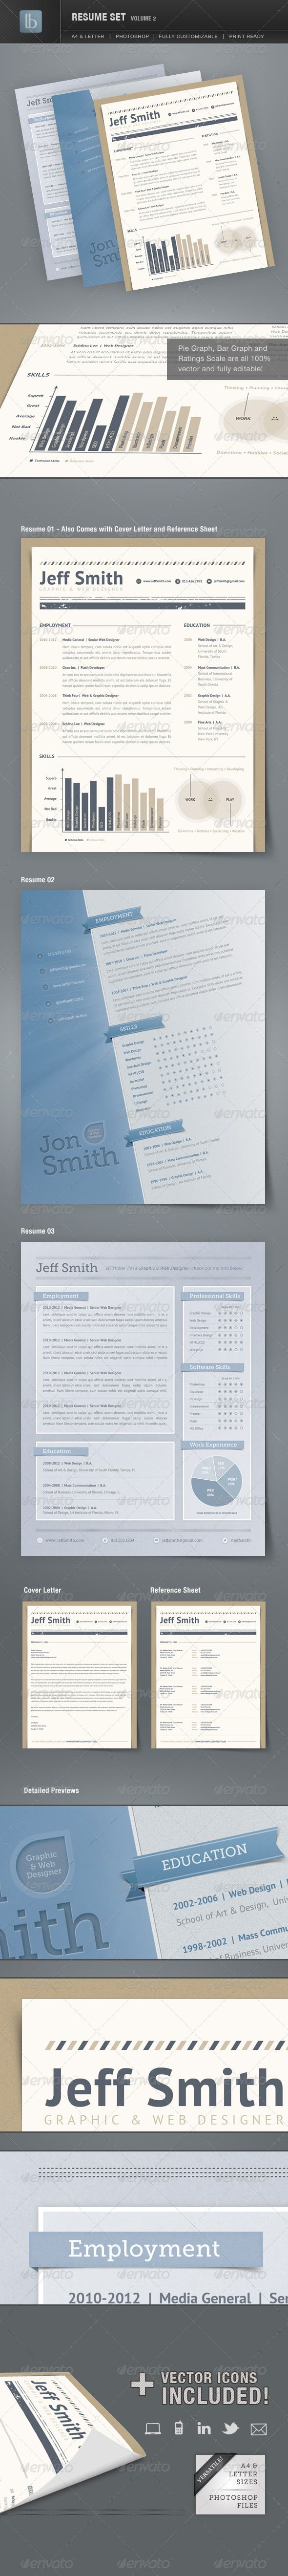 radio personality resume%0A Resume Set Volume   Get noticed with this stylish resume set   different  resume designs